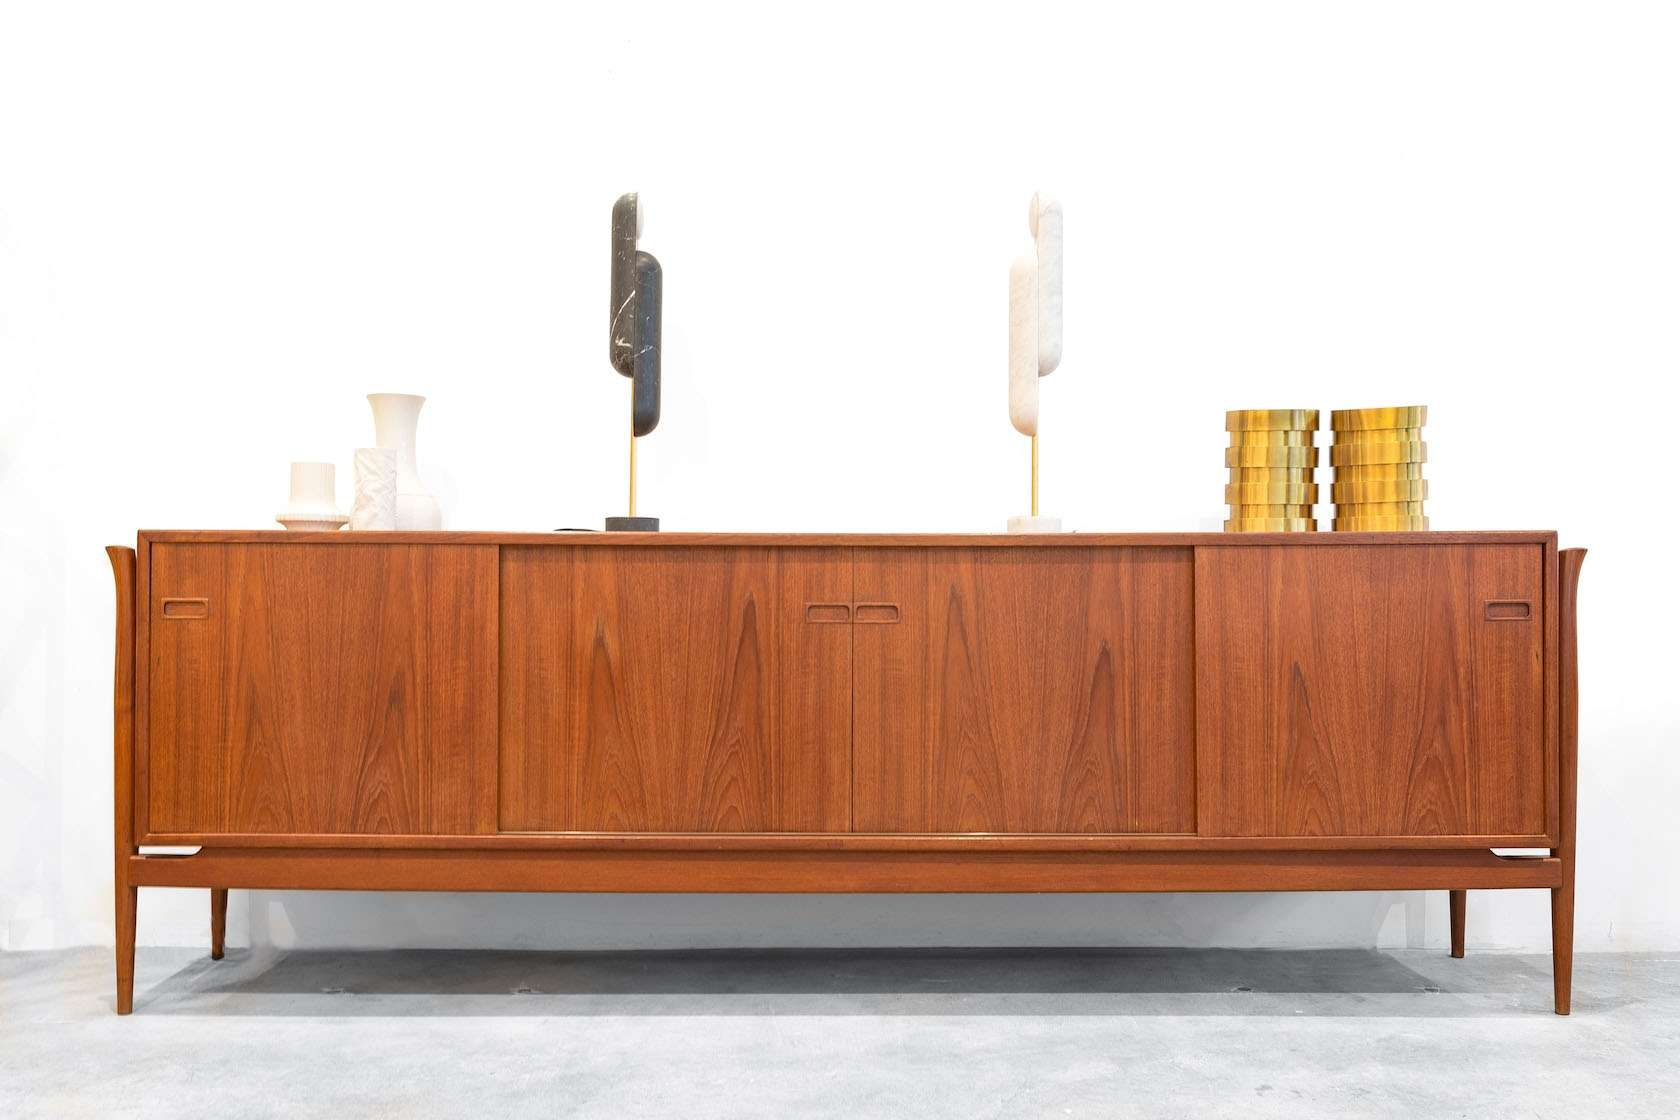 Vintage Danish Sideboardfinn Juhl For Sale At Pamono Throughout Danish Retro Sideboards (View 17 of 20)